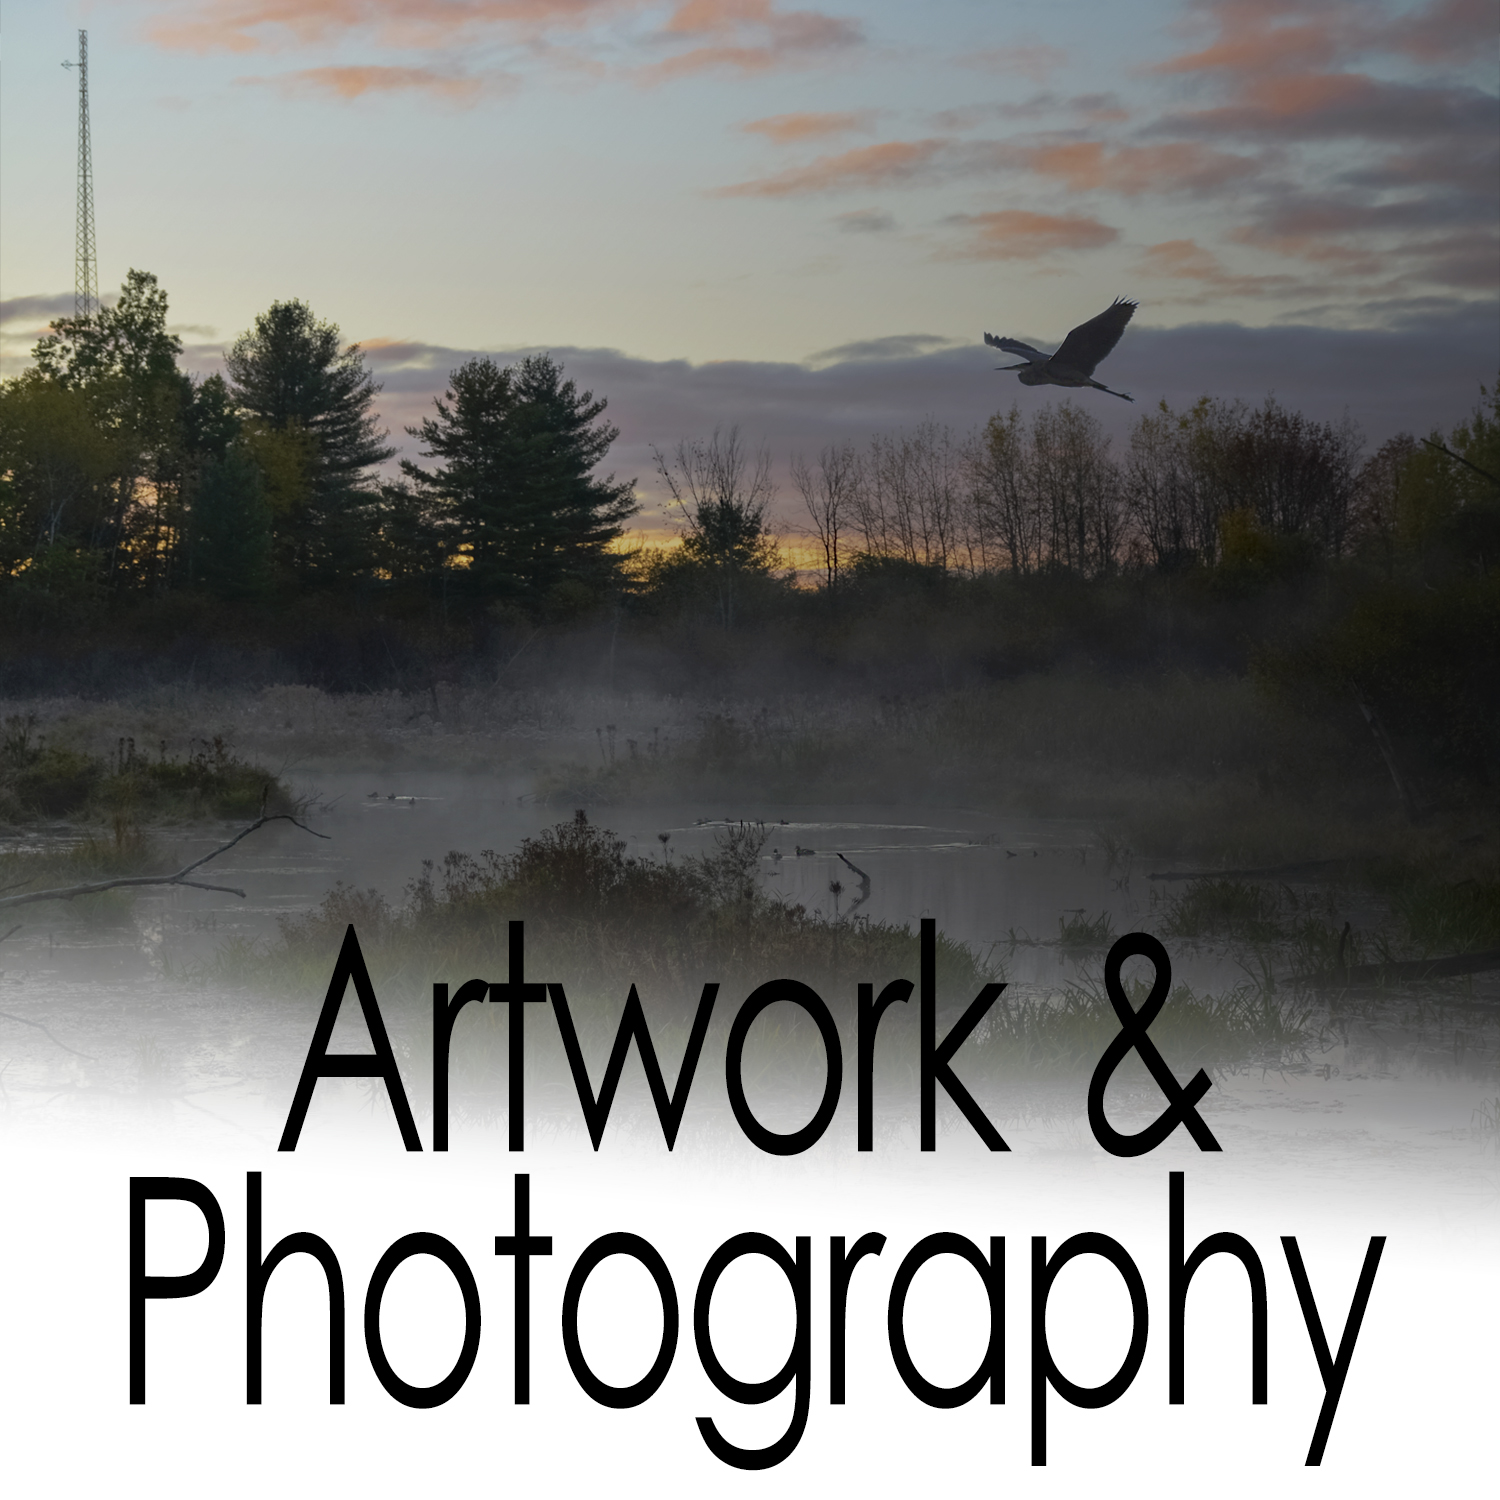 - · LANDSCAPES· DIGITAL ART· MISCELLANEOUS· MIXED MEDIA AND FINE ART· PURCHASING· EXHIBITSOnline Galleries include Limited EditionPhotography that may not be available.